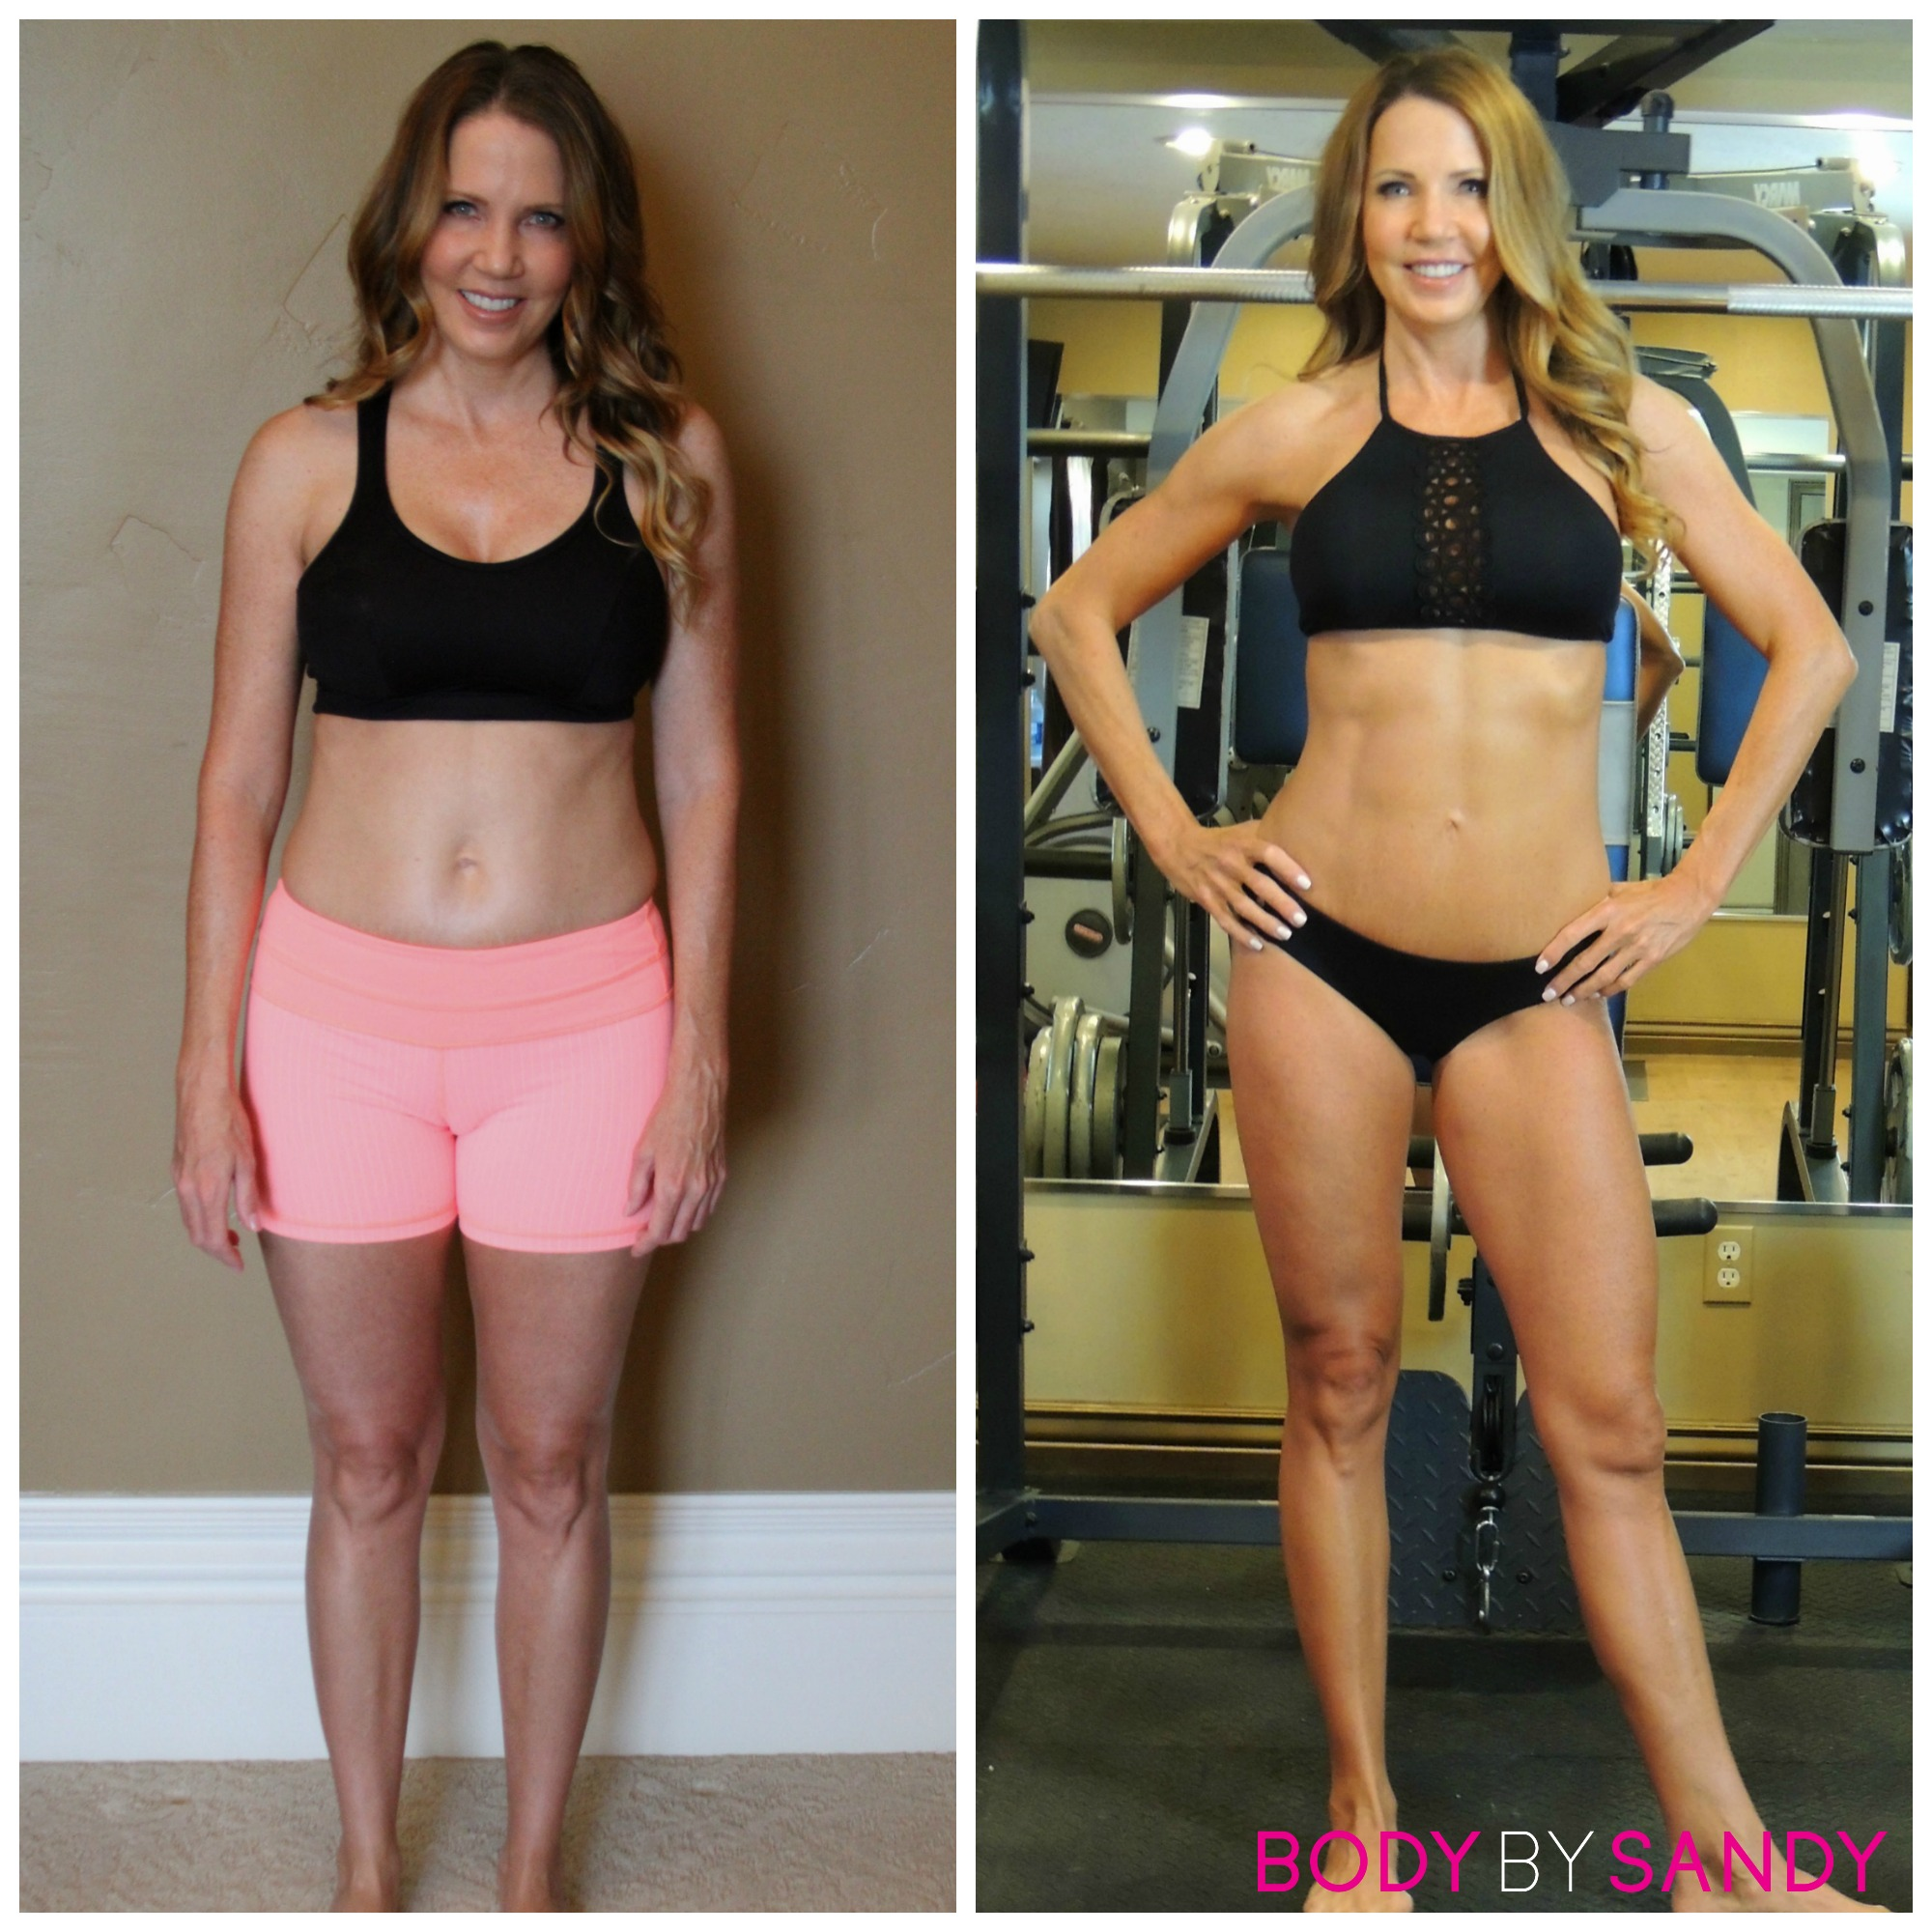 IValynn lost 15.5 inches, 12.3% body fat and gained 8 pounds of muscle mass.